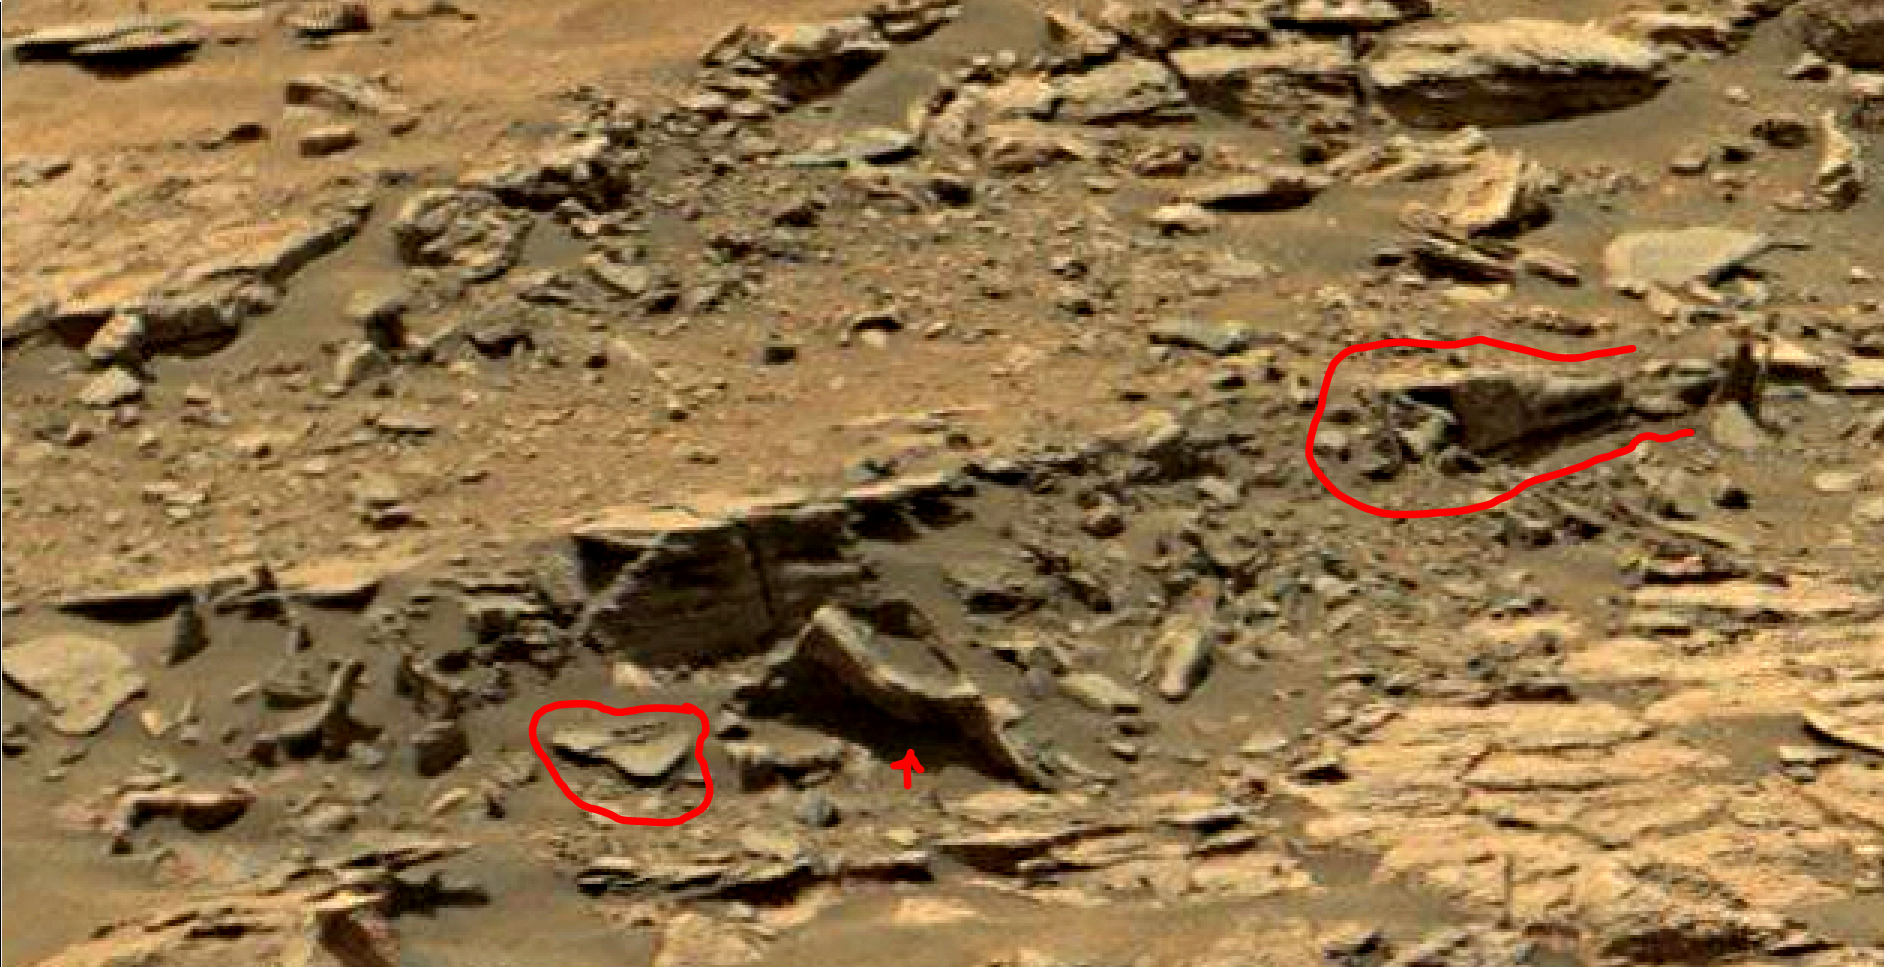 mars sol 1447 anomaly artifacts 6a - was life on mars